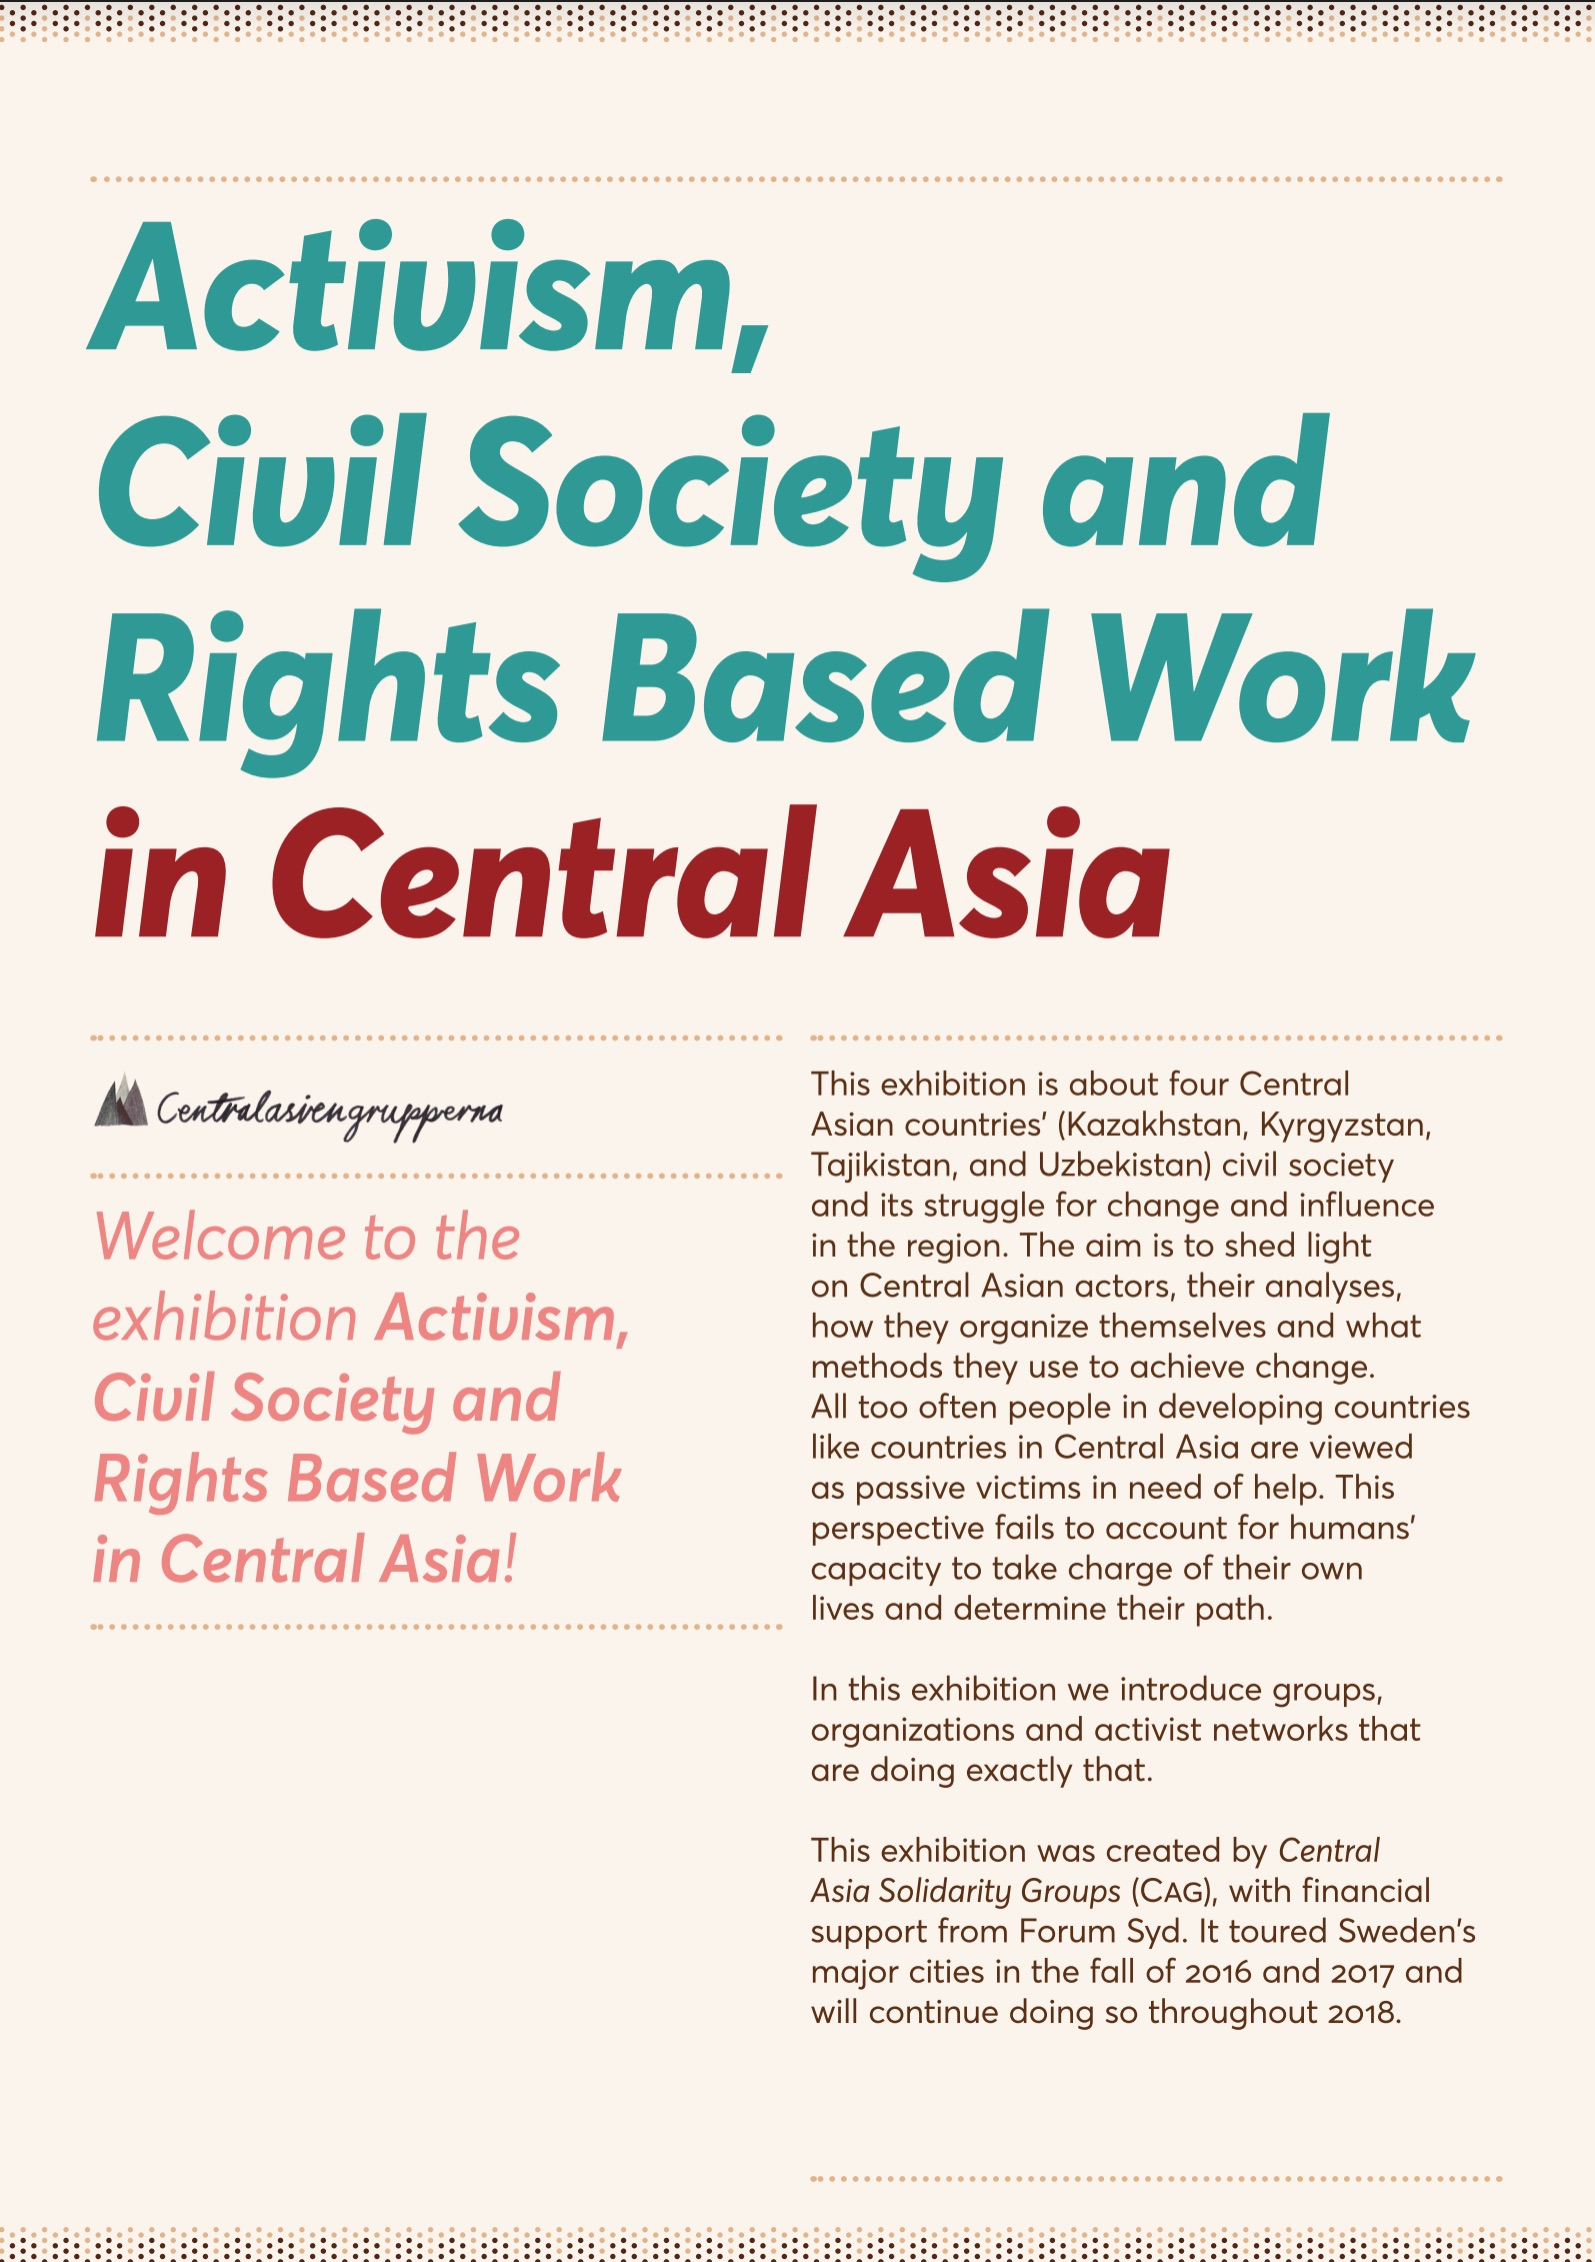 Activism, Civil Society and Rights Based Work in Central Asia